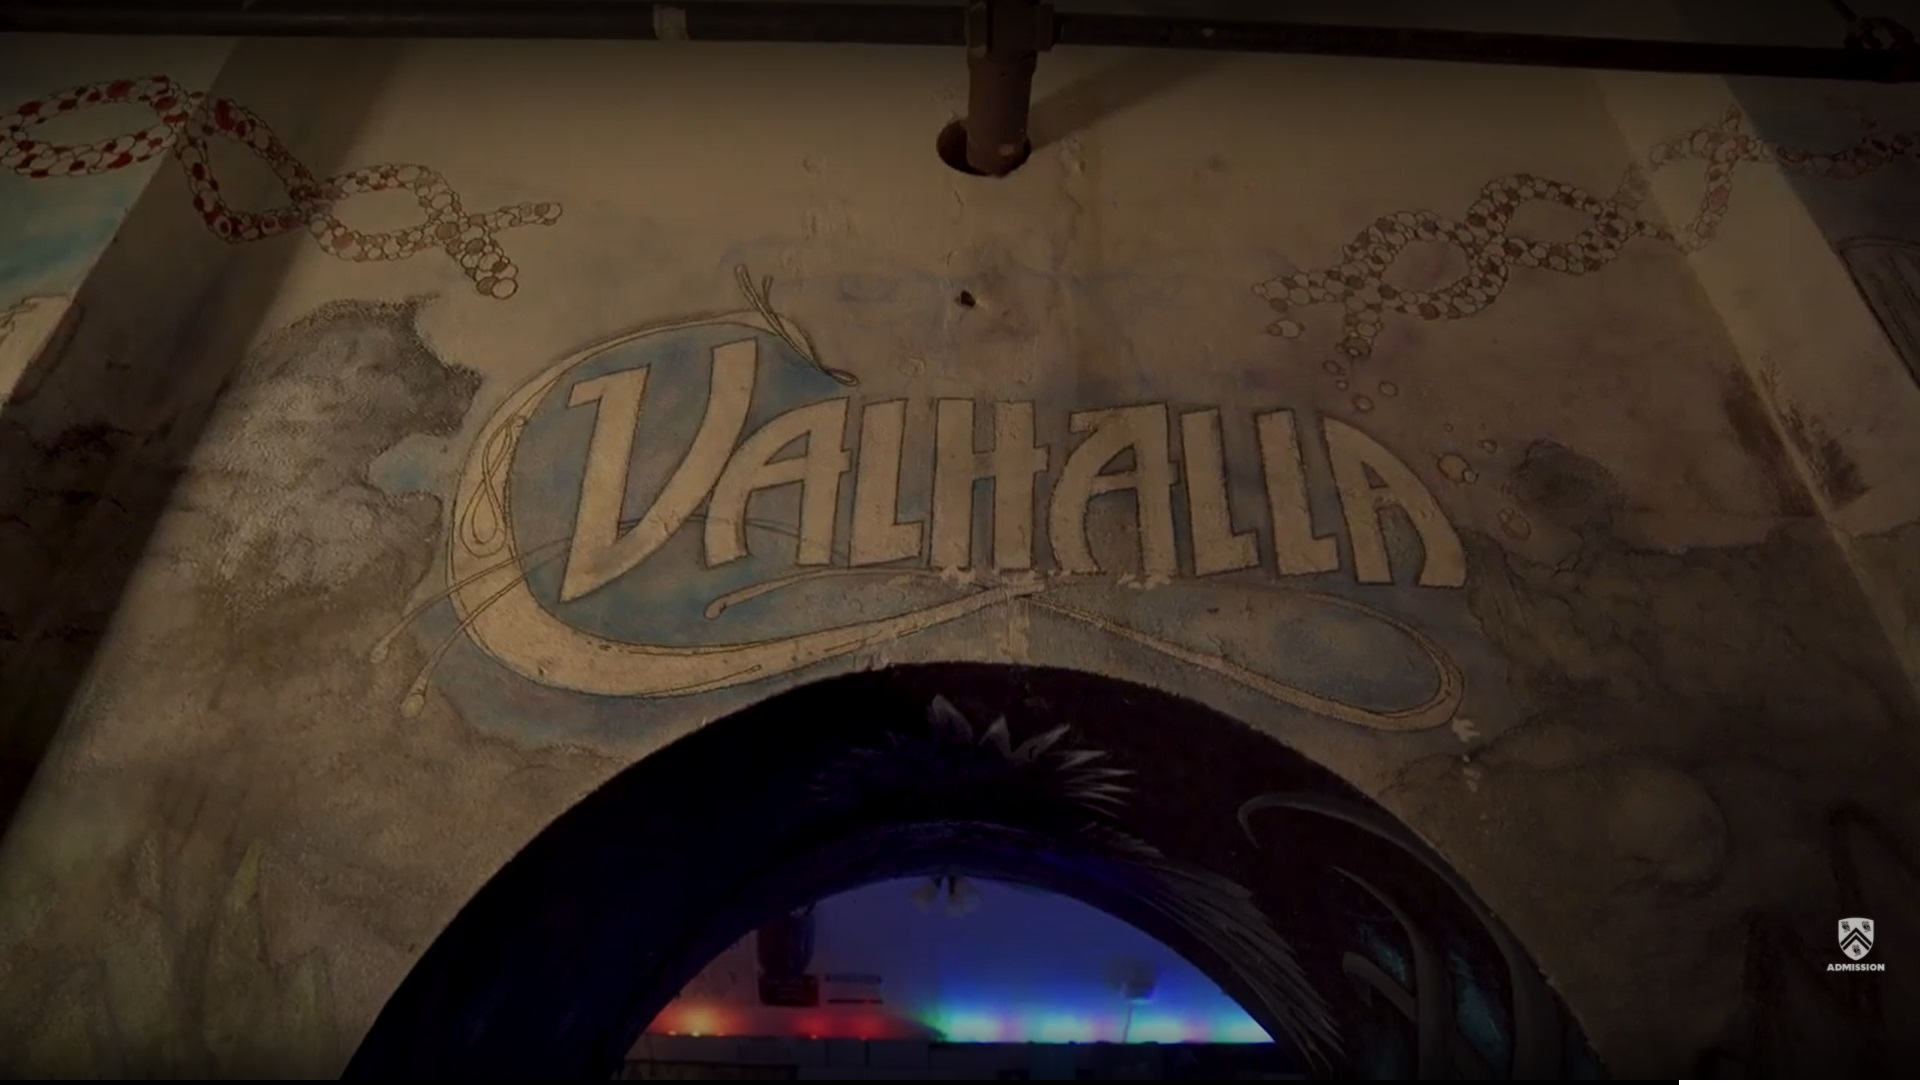 A picture of the entrance to Valhalla, focusing on the name painted above the arched doorway..